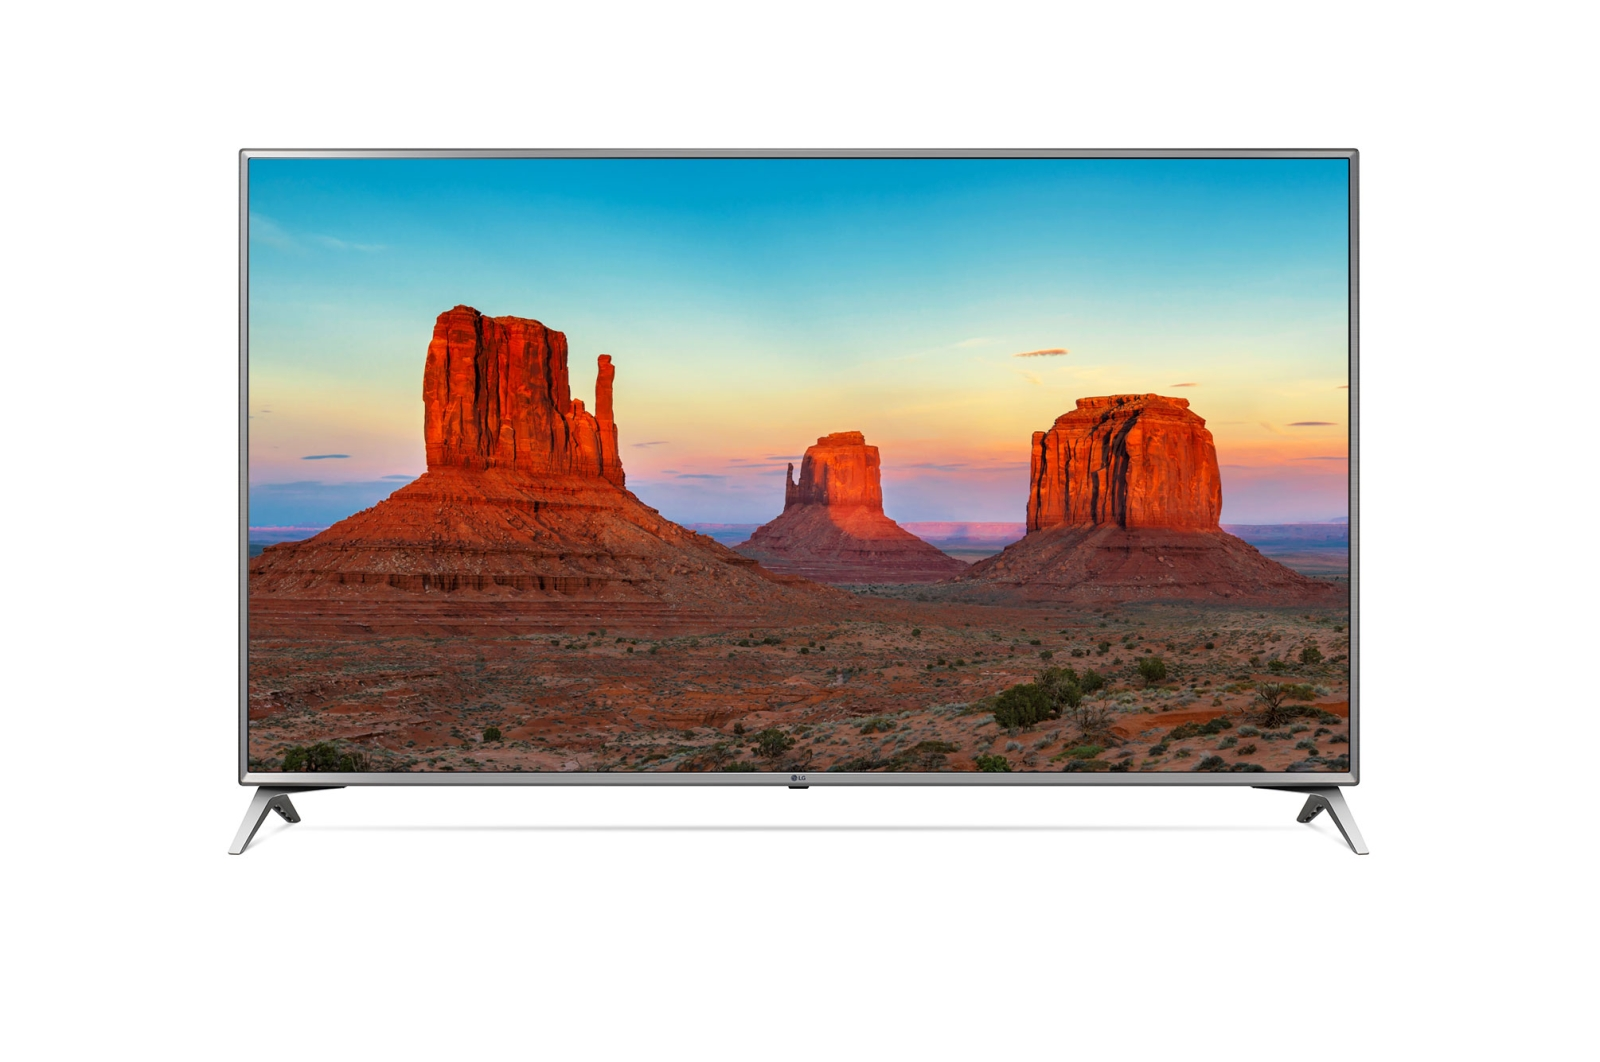 "Телевизор LG 55UK6510 LED 55"" Silver, Smart TV, 16:9, 3840x2160, USB, HDMI, Wi-Fi, RJ-45, DVB-T, T2, C, S, S2"